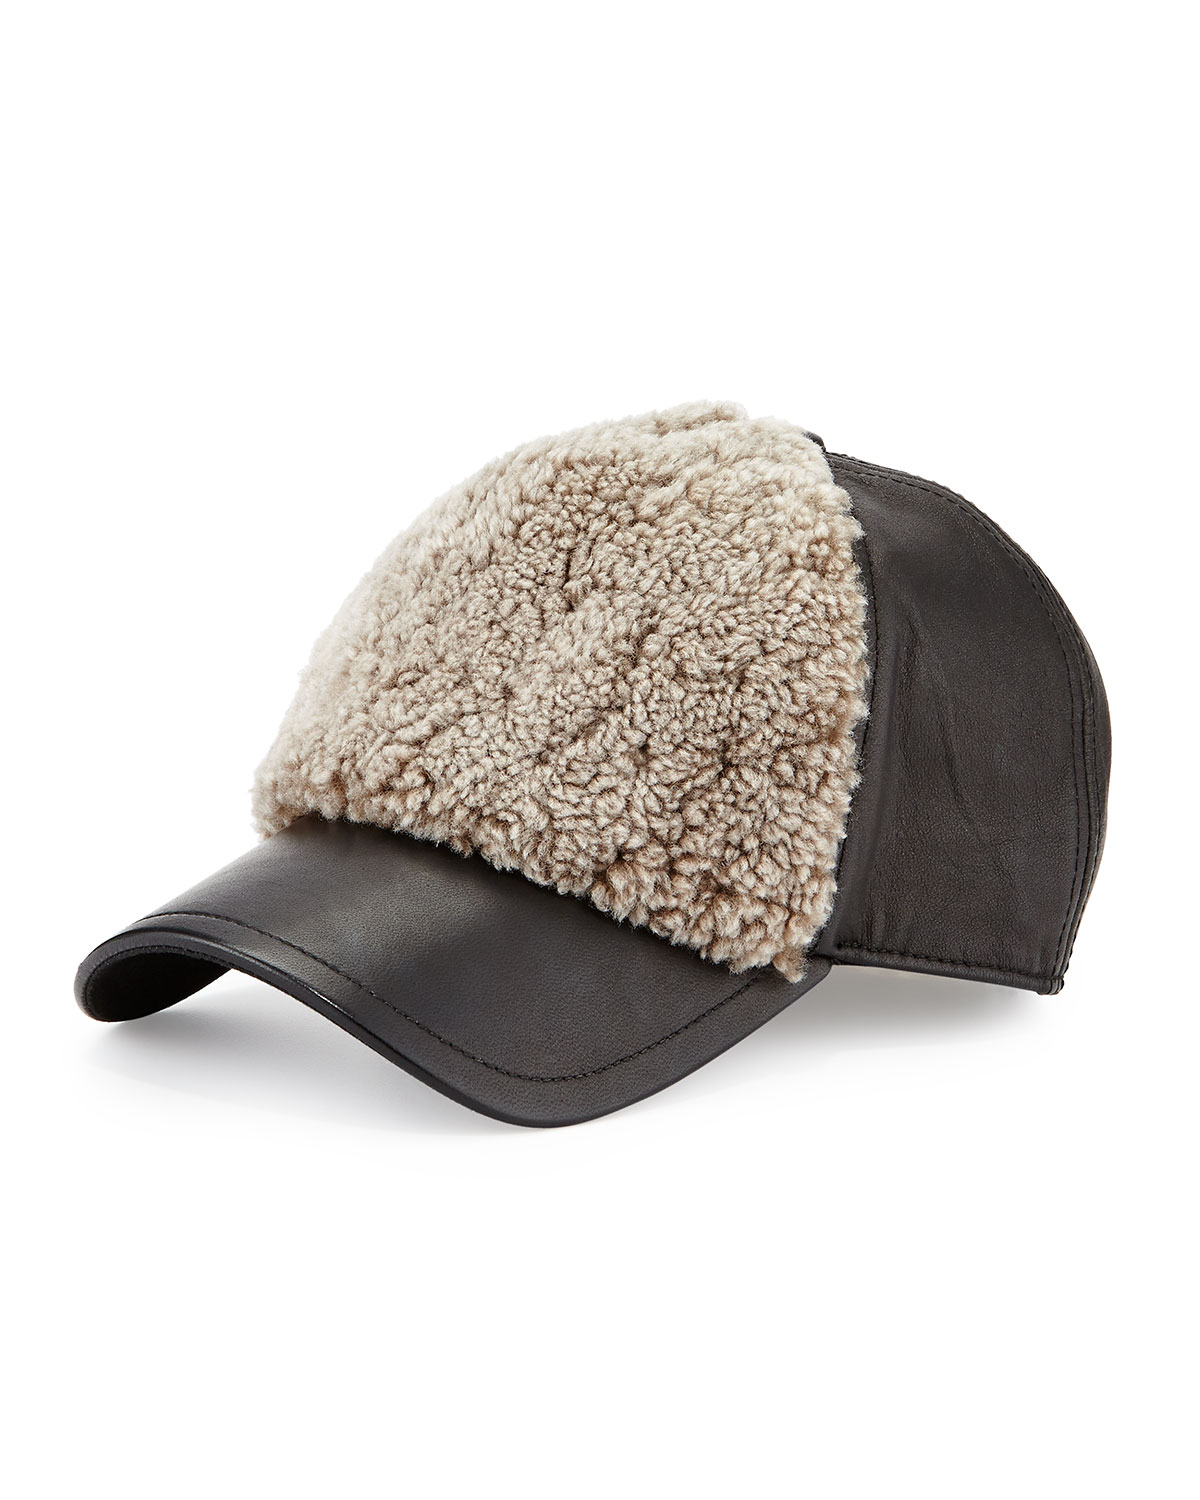 42fcb5cff72 Rag   Bone Marilyn Leather   Shearling Fur Baseball Cap